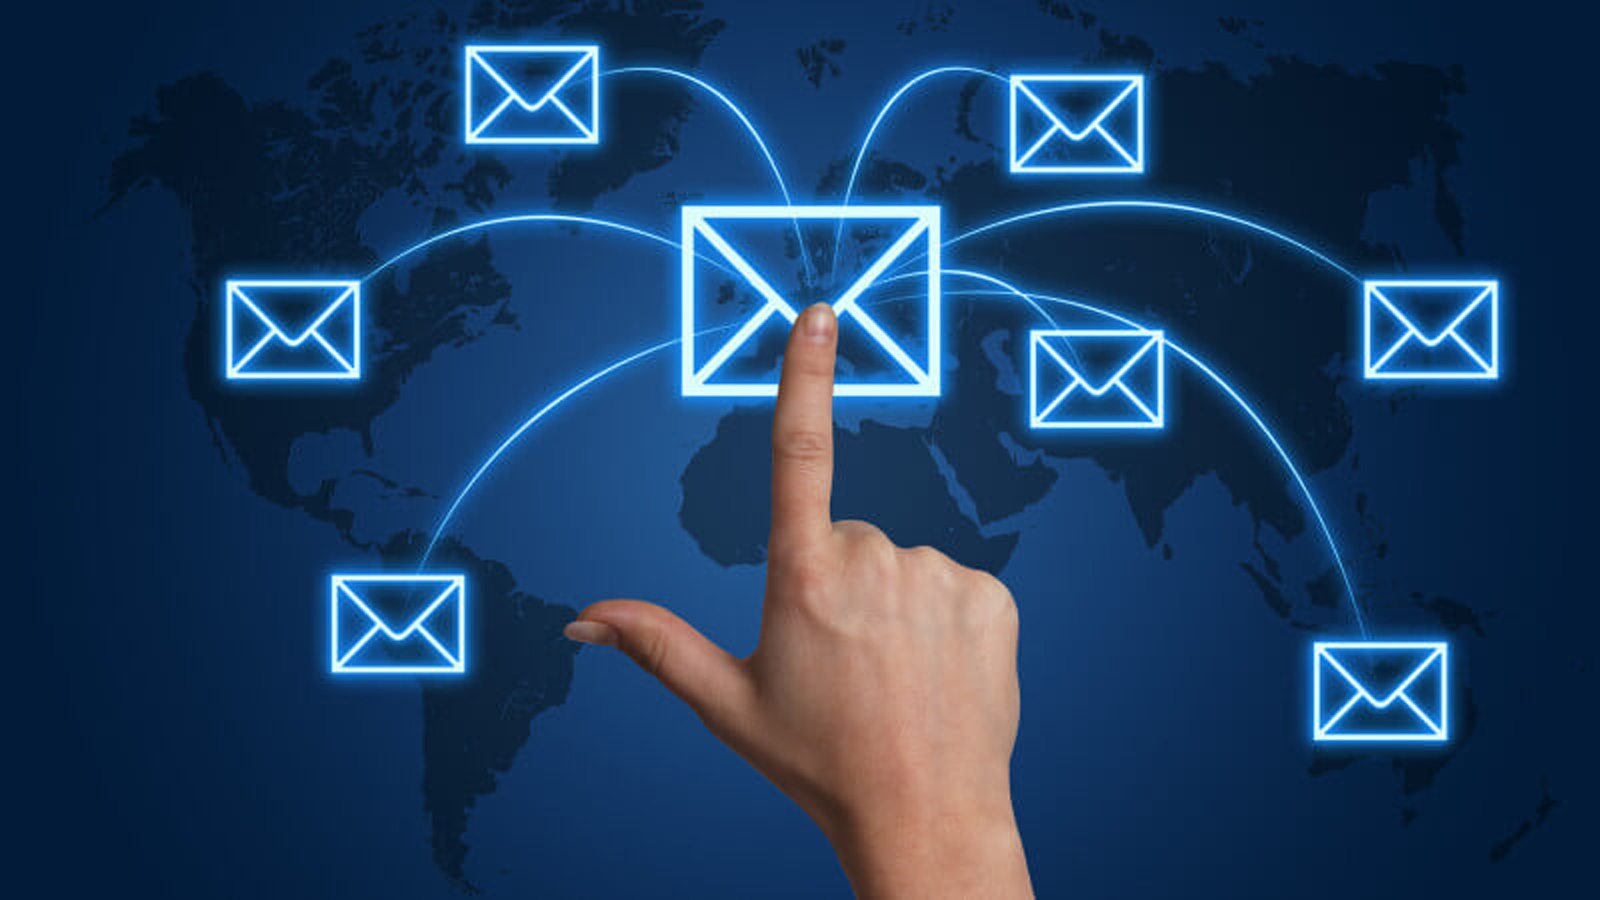 10 Essential Email plug-ins that will increase your productivity